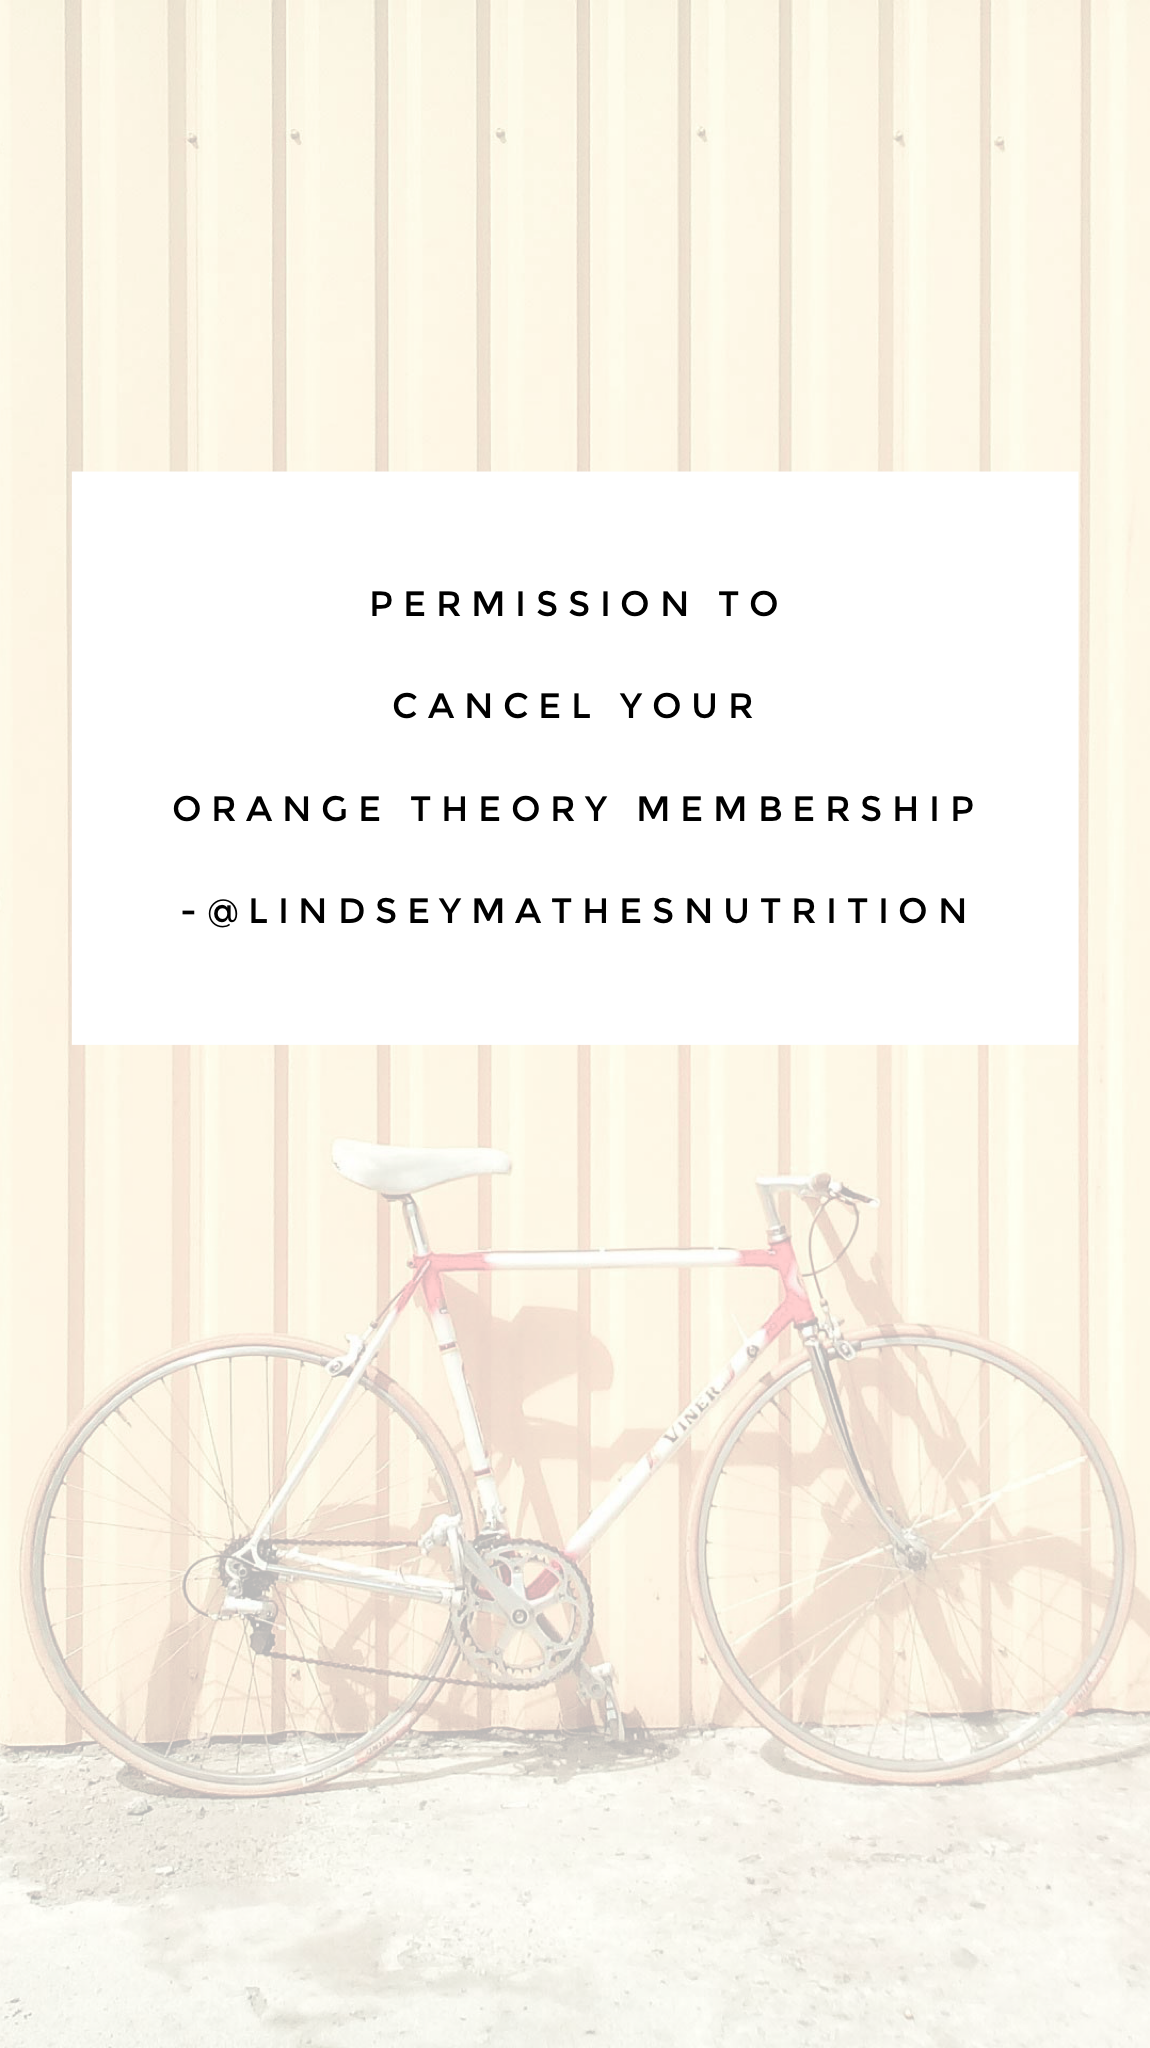 Permission to Cancel Your Orange Theory Membership